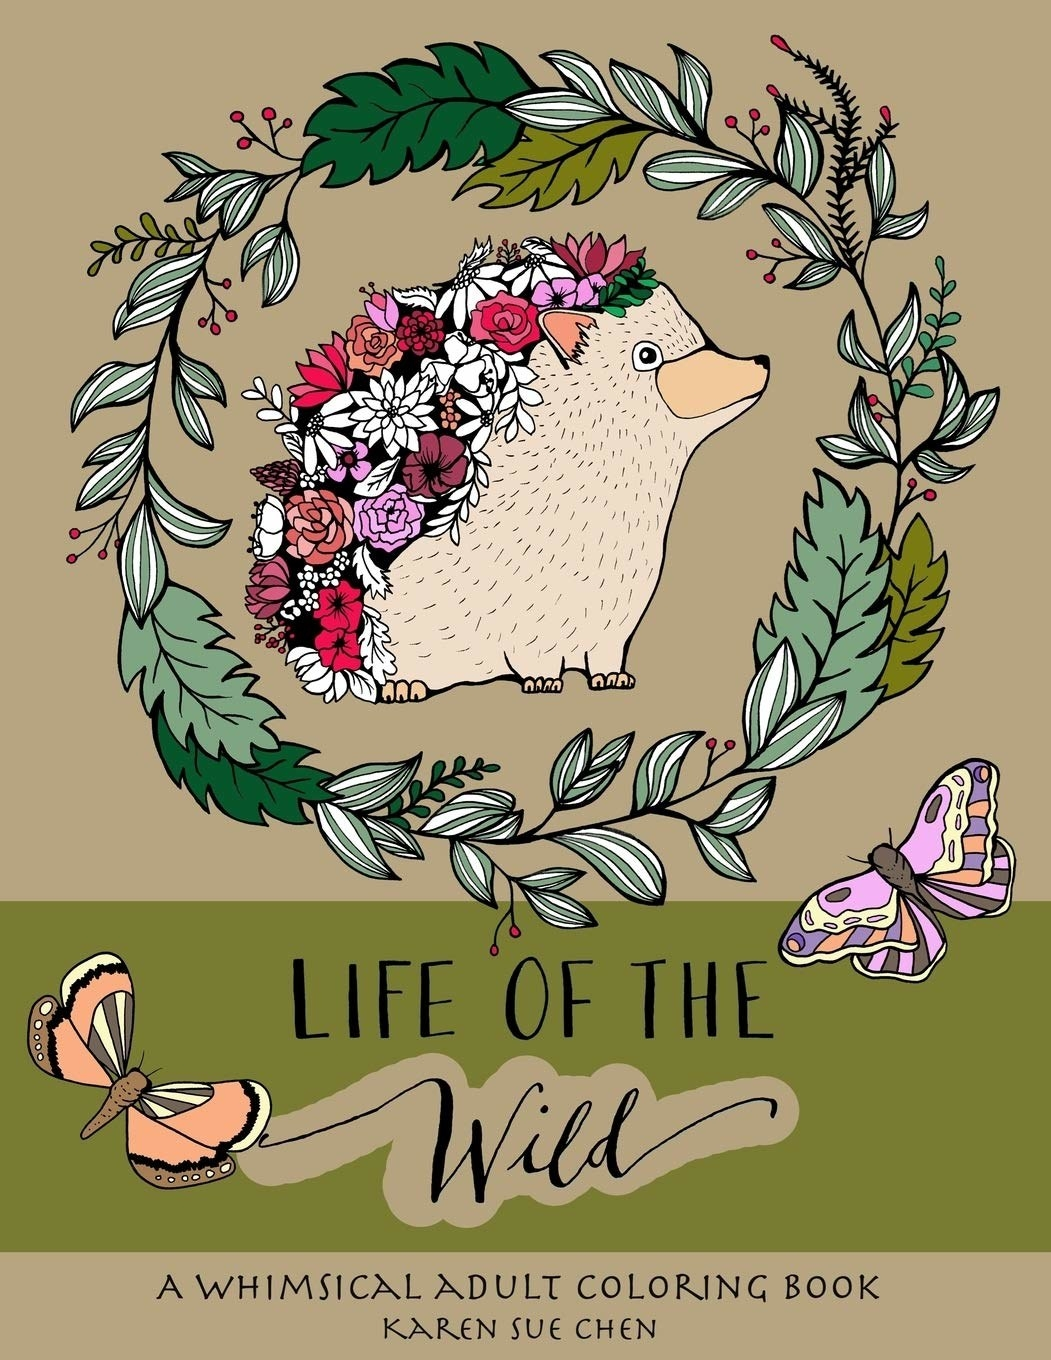 Cover of the coloring book, featuring a hedgehog and woodland designs